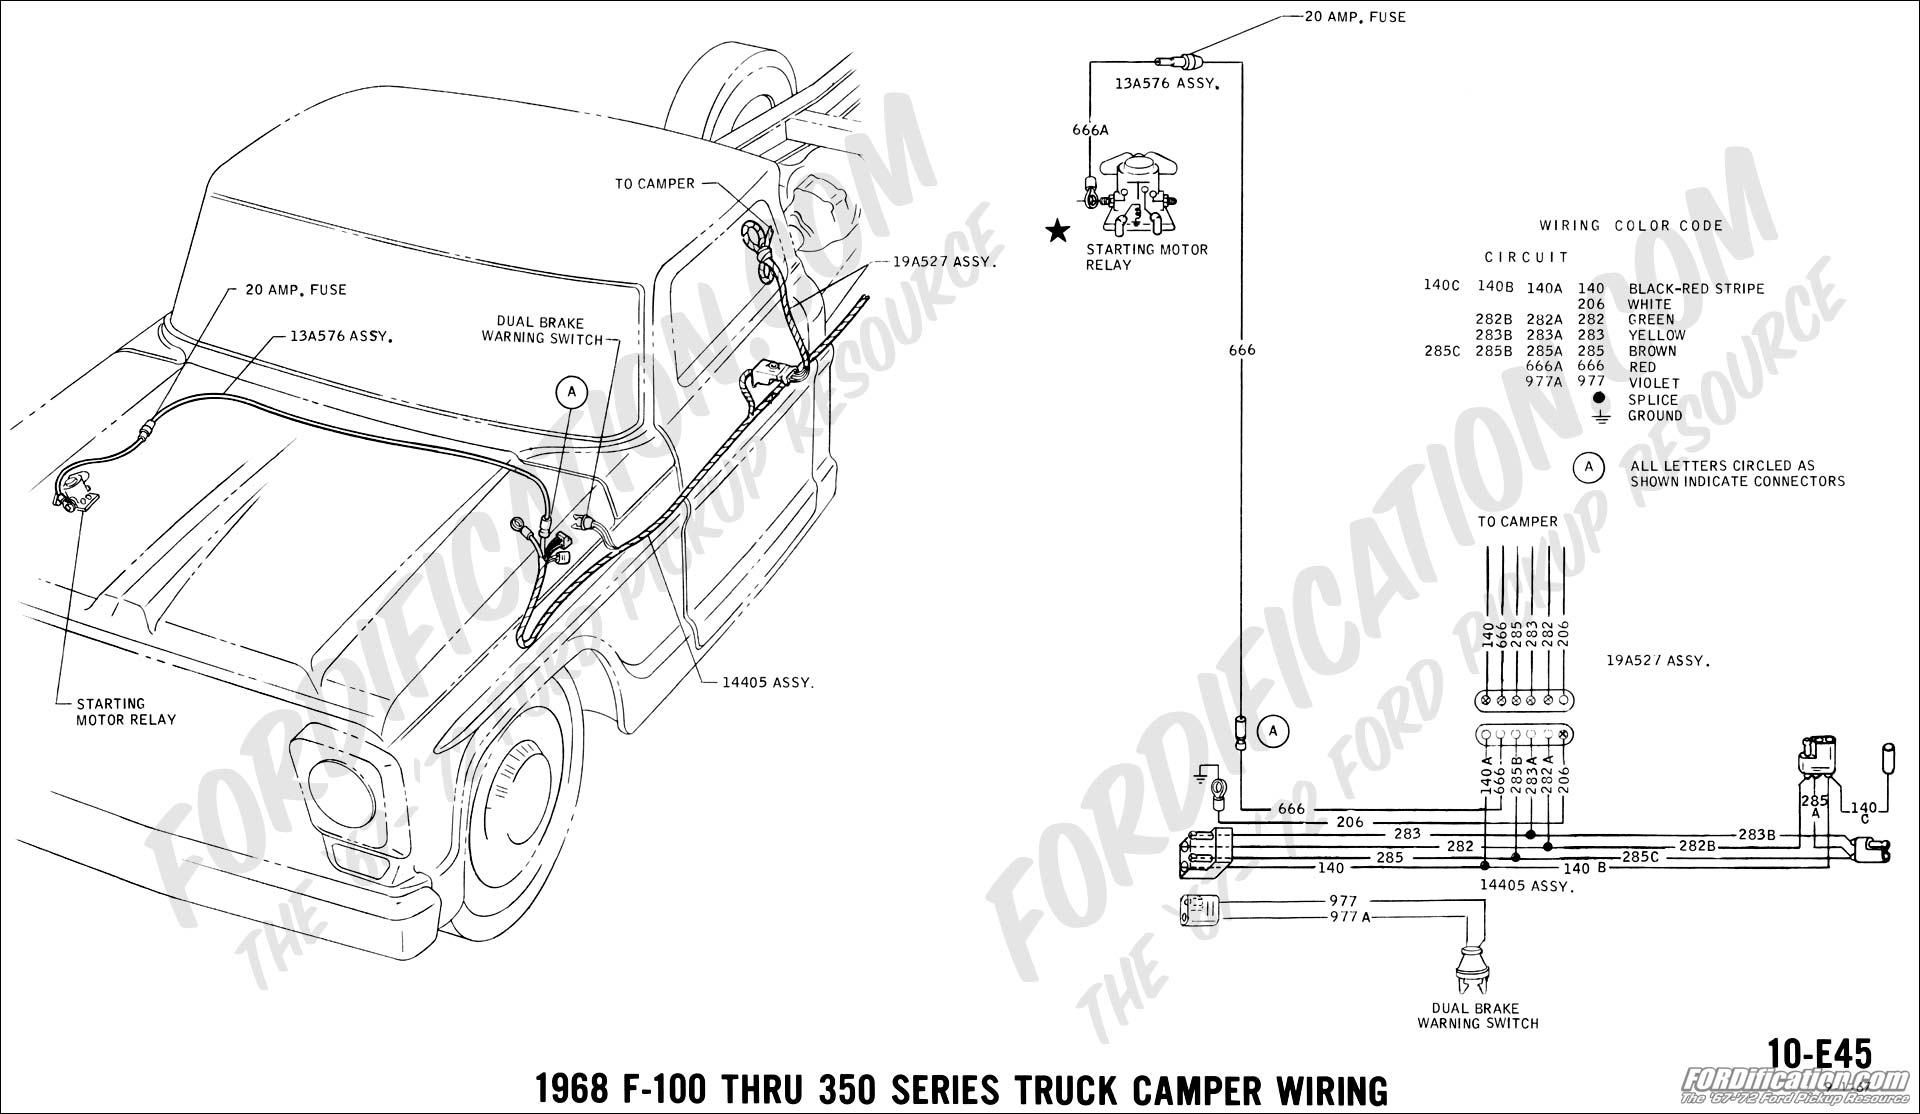 68 47 ford truck technical drawings and schematics section h wiring truck camper wire harness at couponss.co